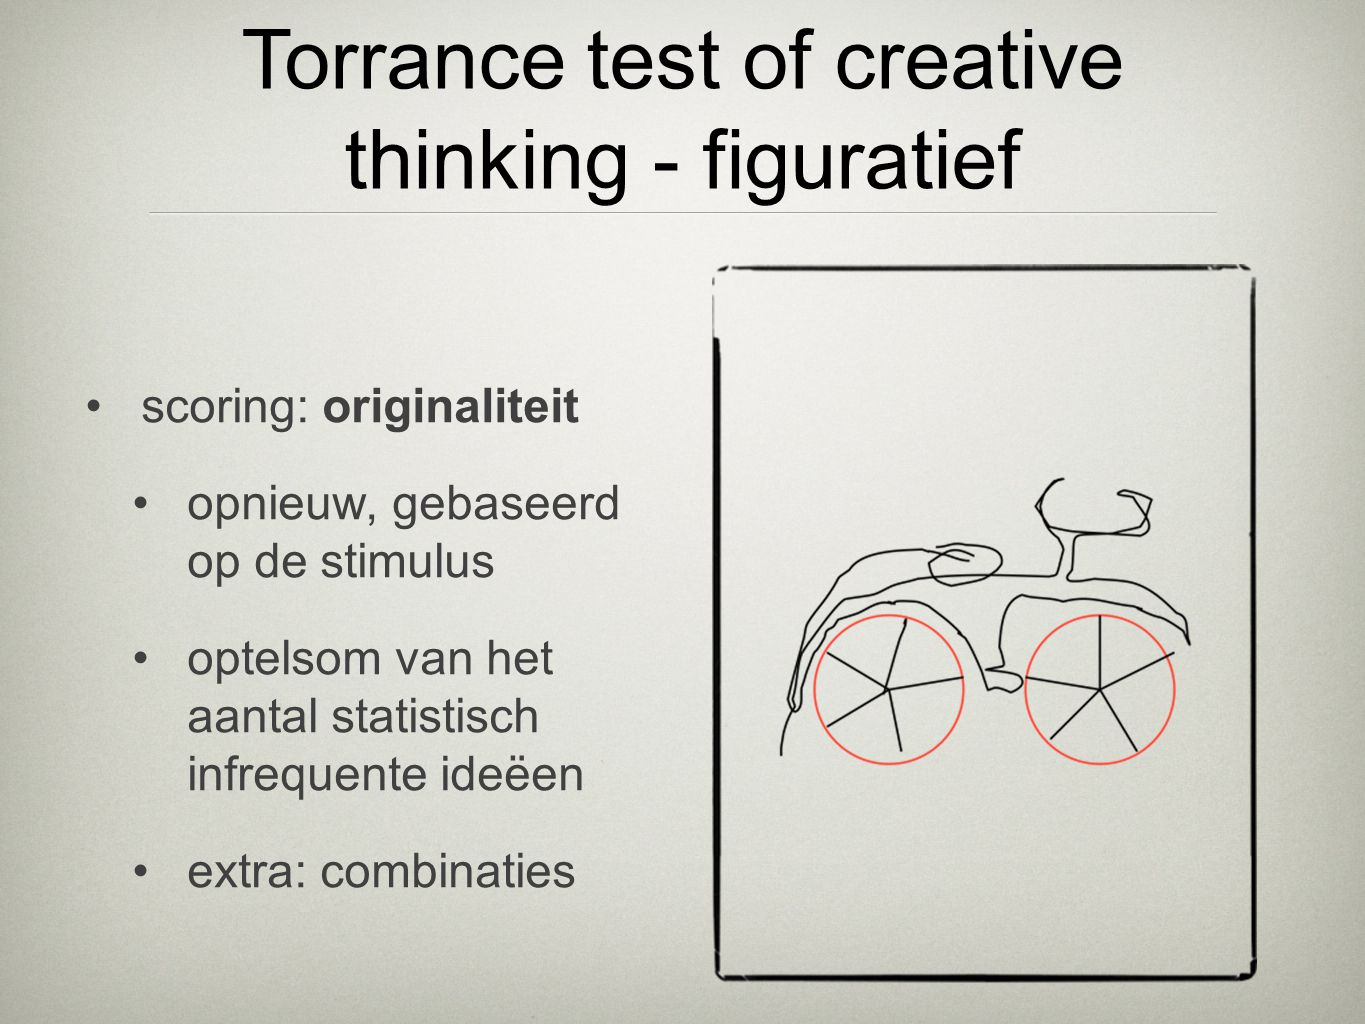 Torrance test of creative thinking - figuratief